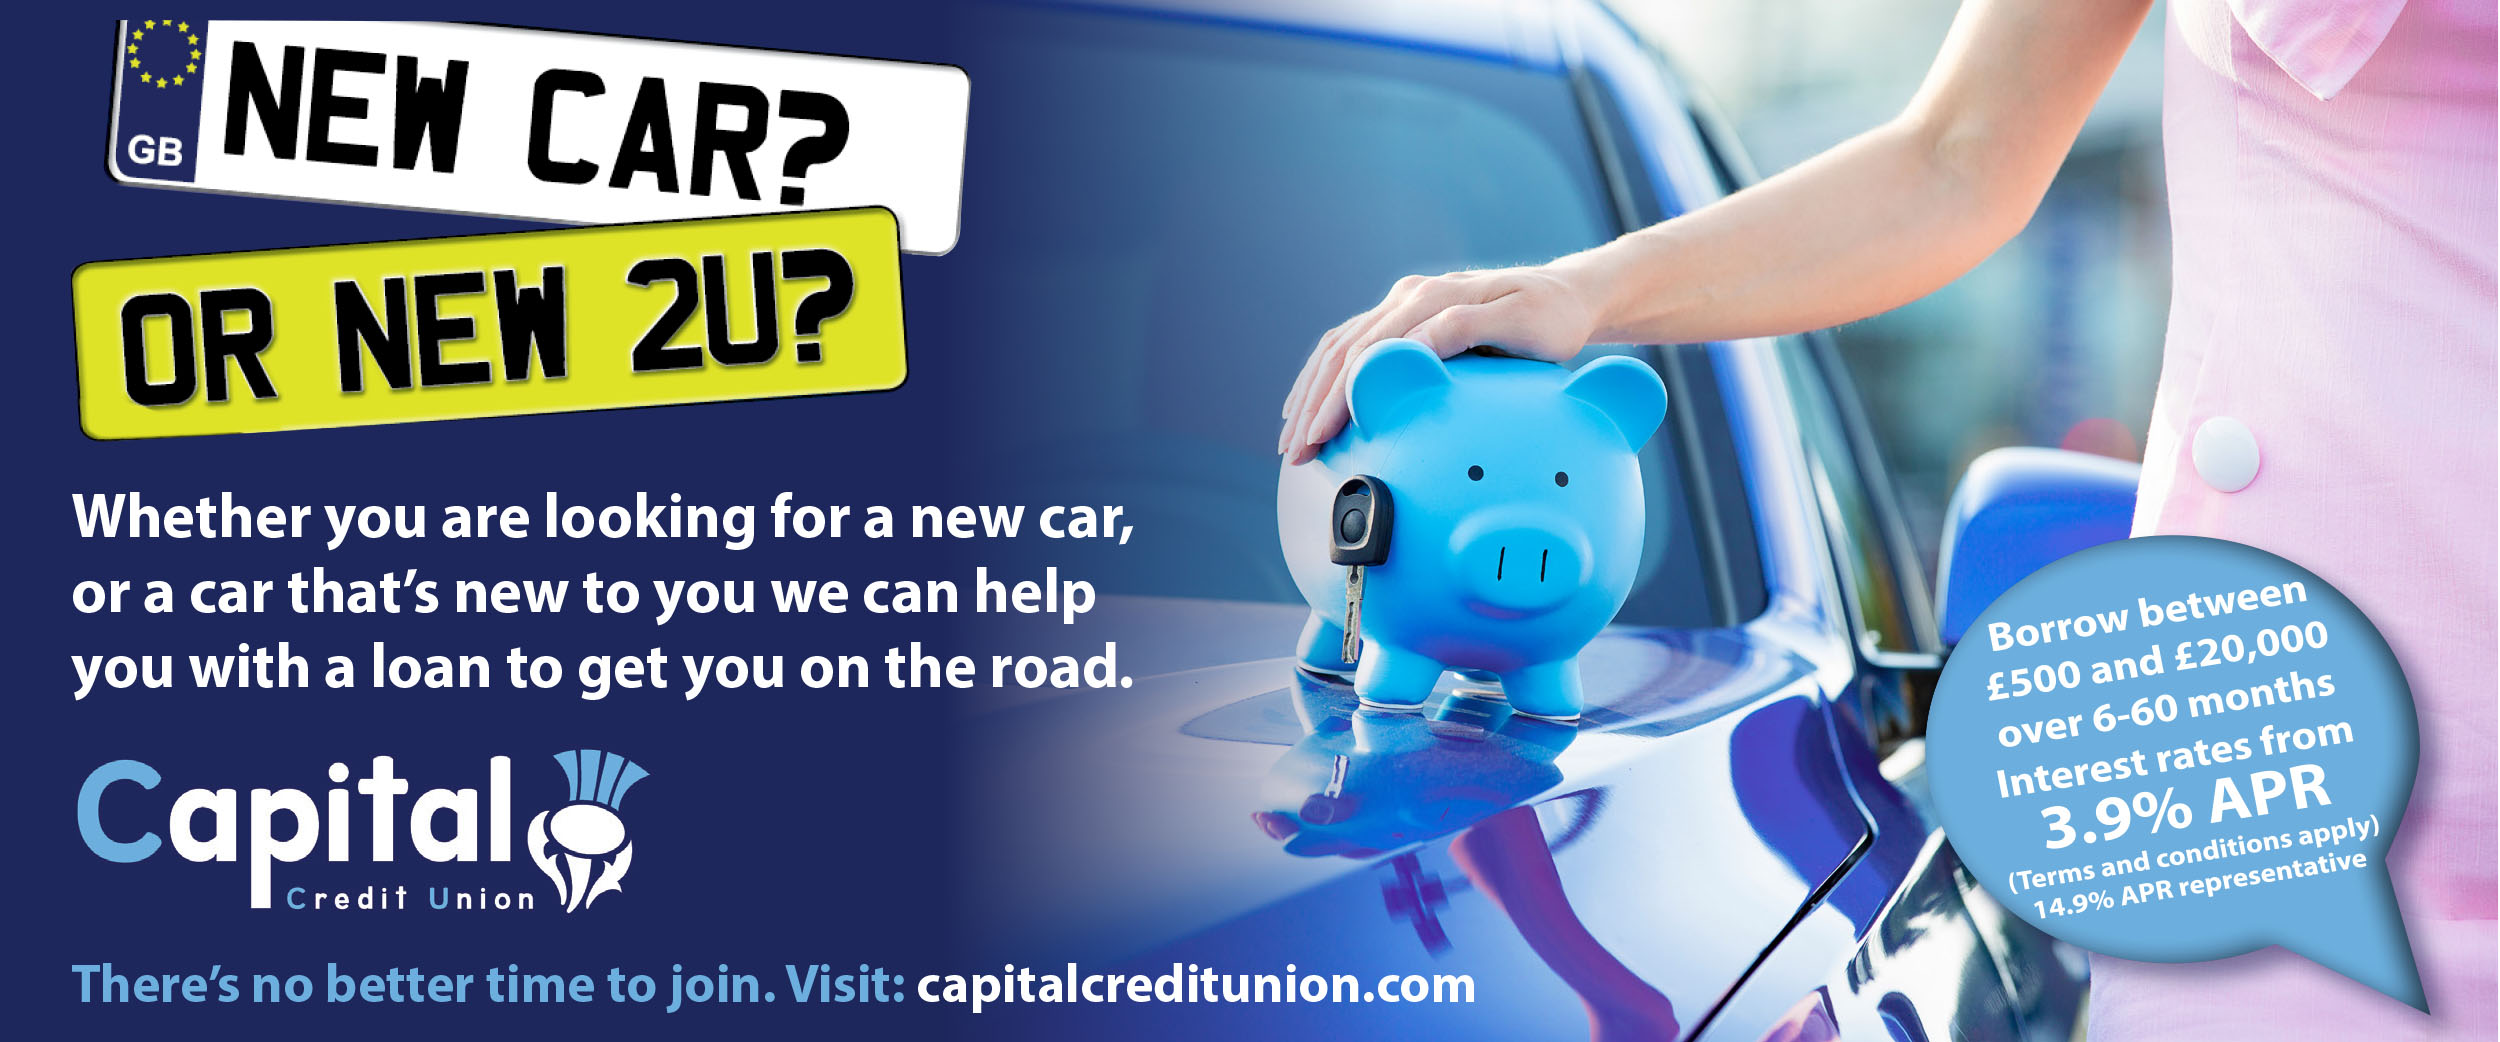 Car Loan email banner.jpg